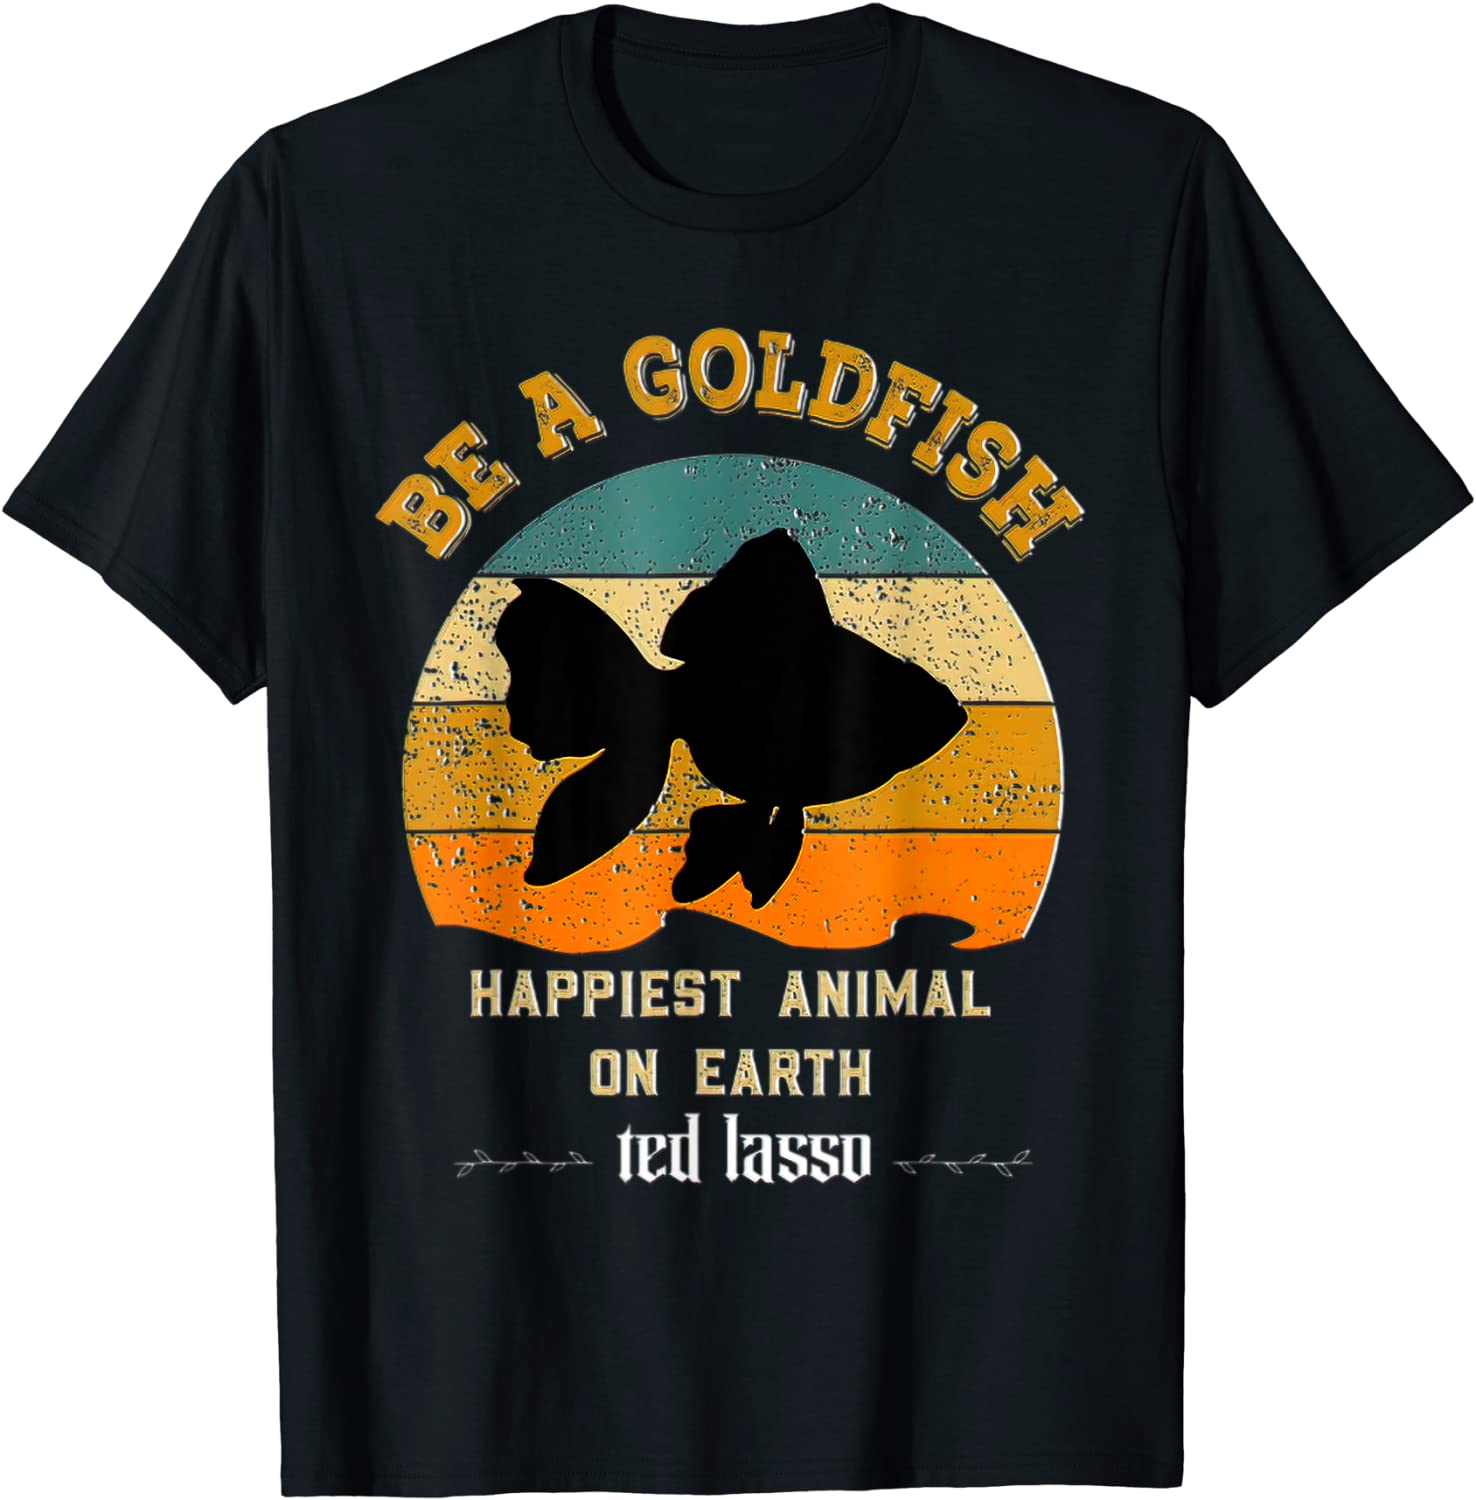 Be A Goldfish Funny Soccer Ted Coach Motivation Lasso T-Shirt